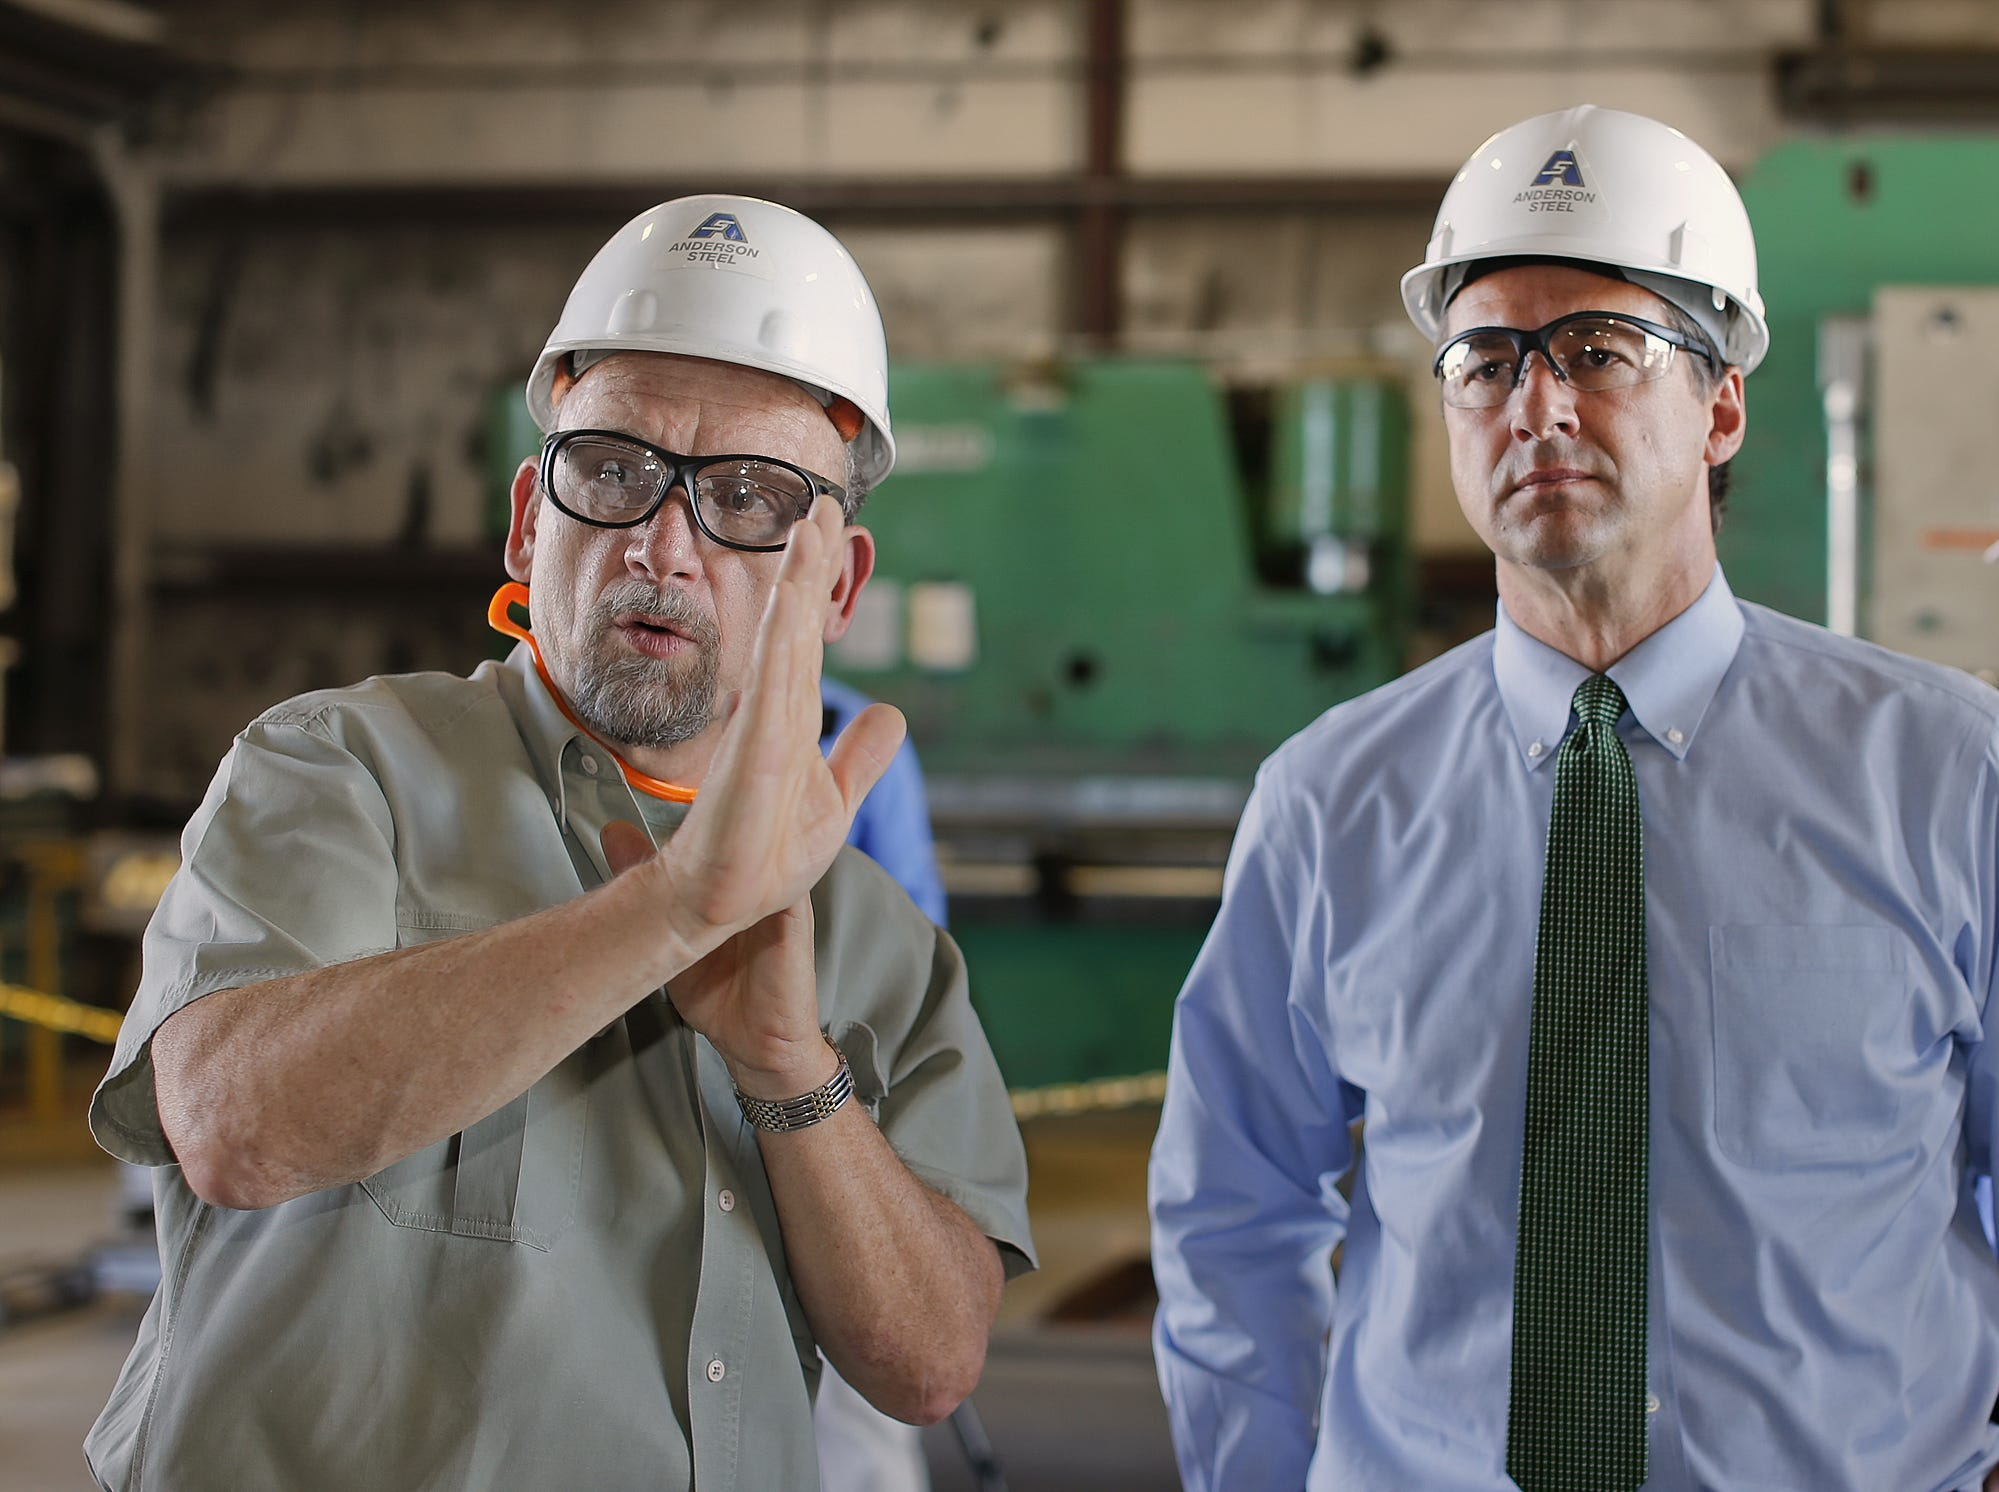 Steve Patrick operations manager of Anderson Steel, left, explains what the Great Falls based company does to Gov. Steve Bullock during a tour Tuesday.